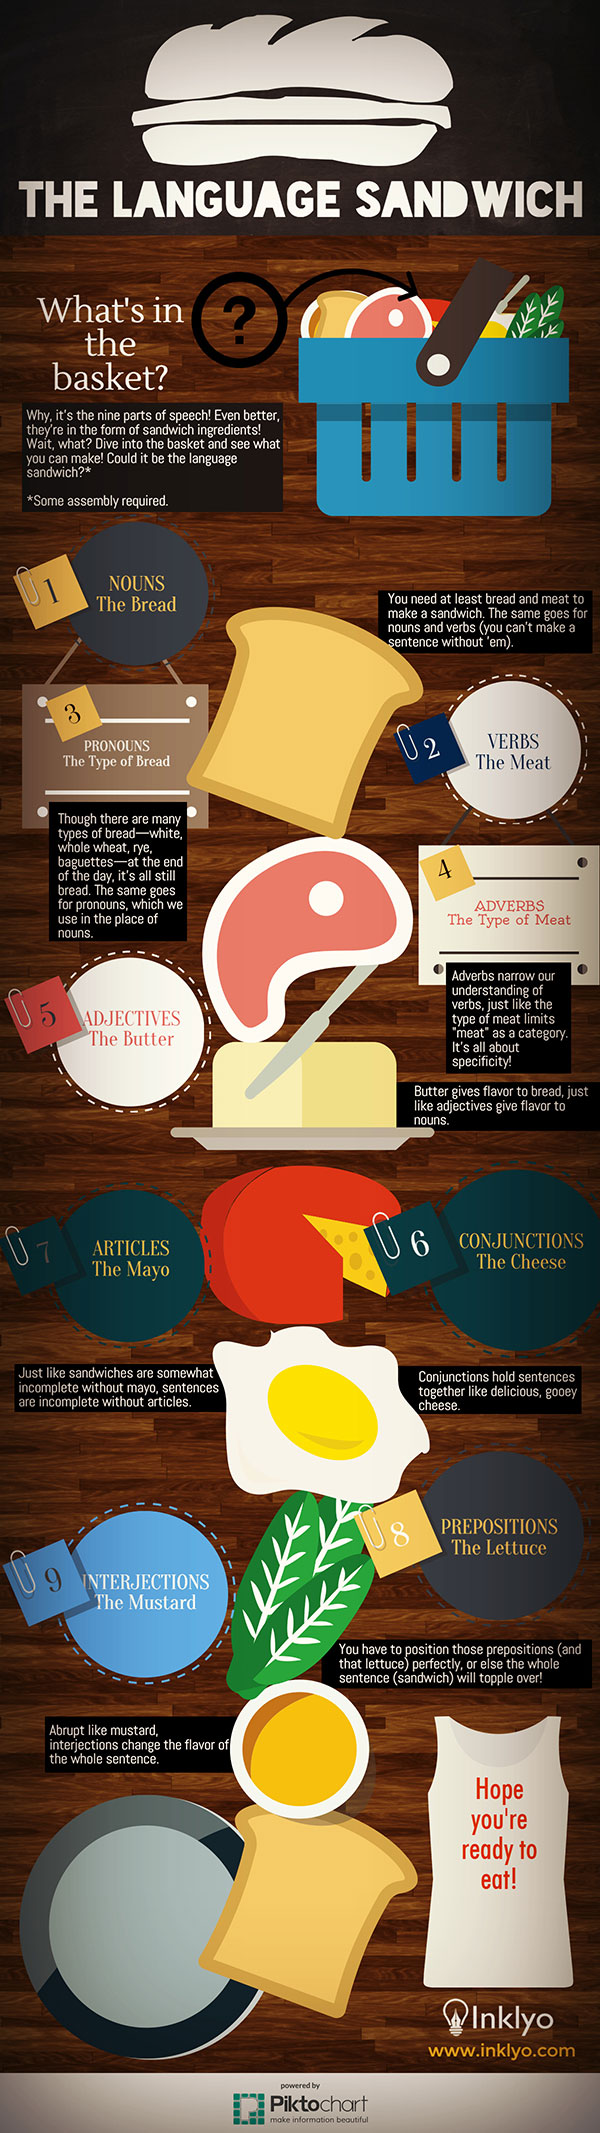 The Language Sandwich Infographic